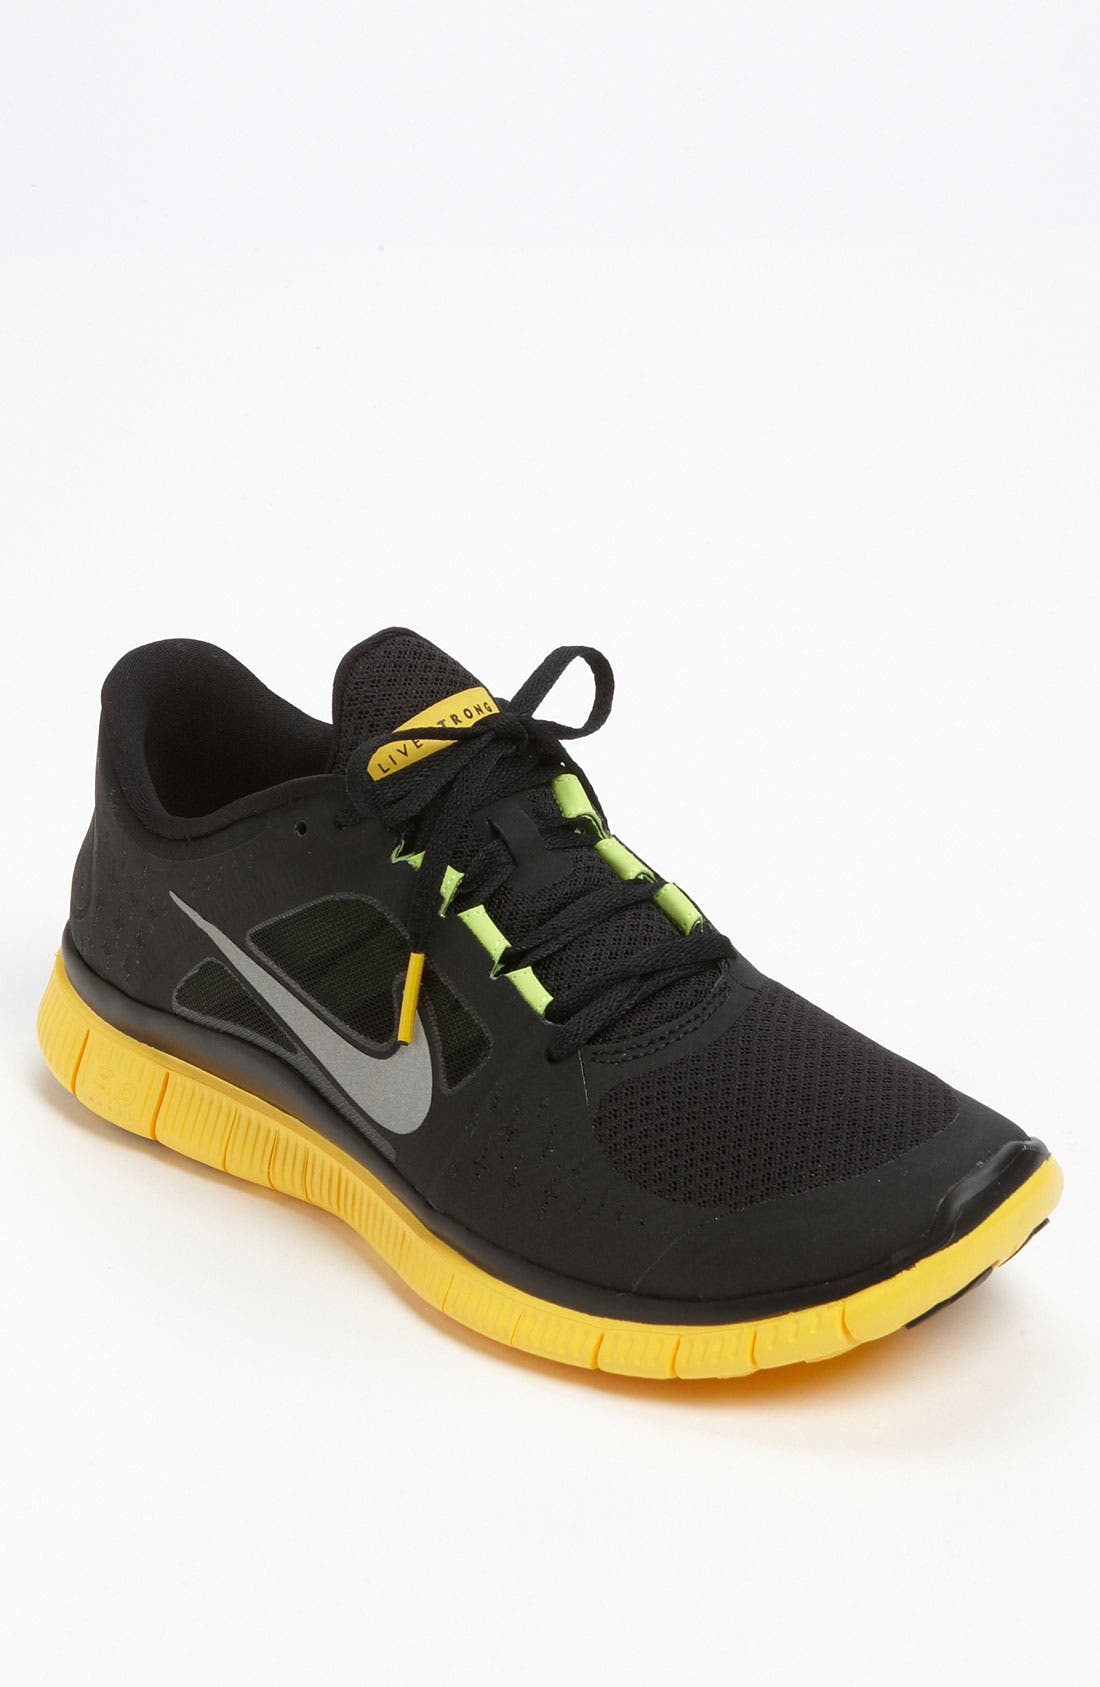 Alternate Image 1 Selected - Nike 'Free Run+ 3 LAF' Running Shoe (Men)